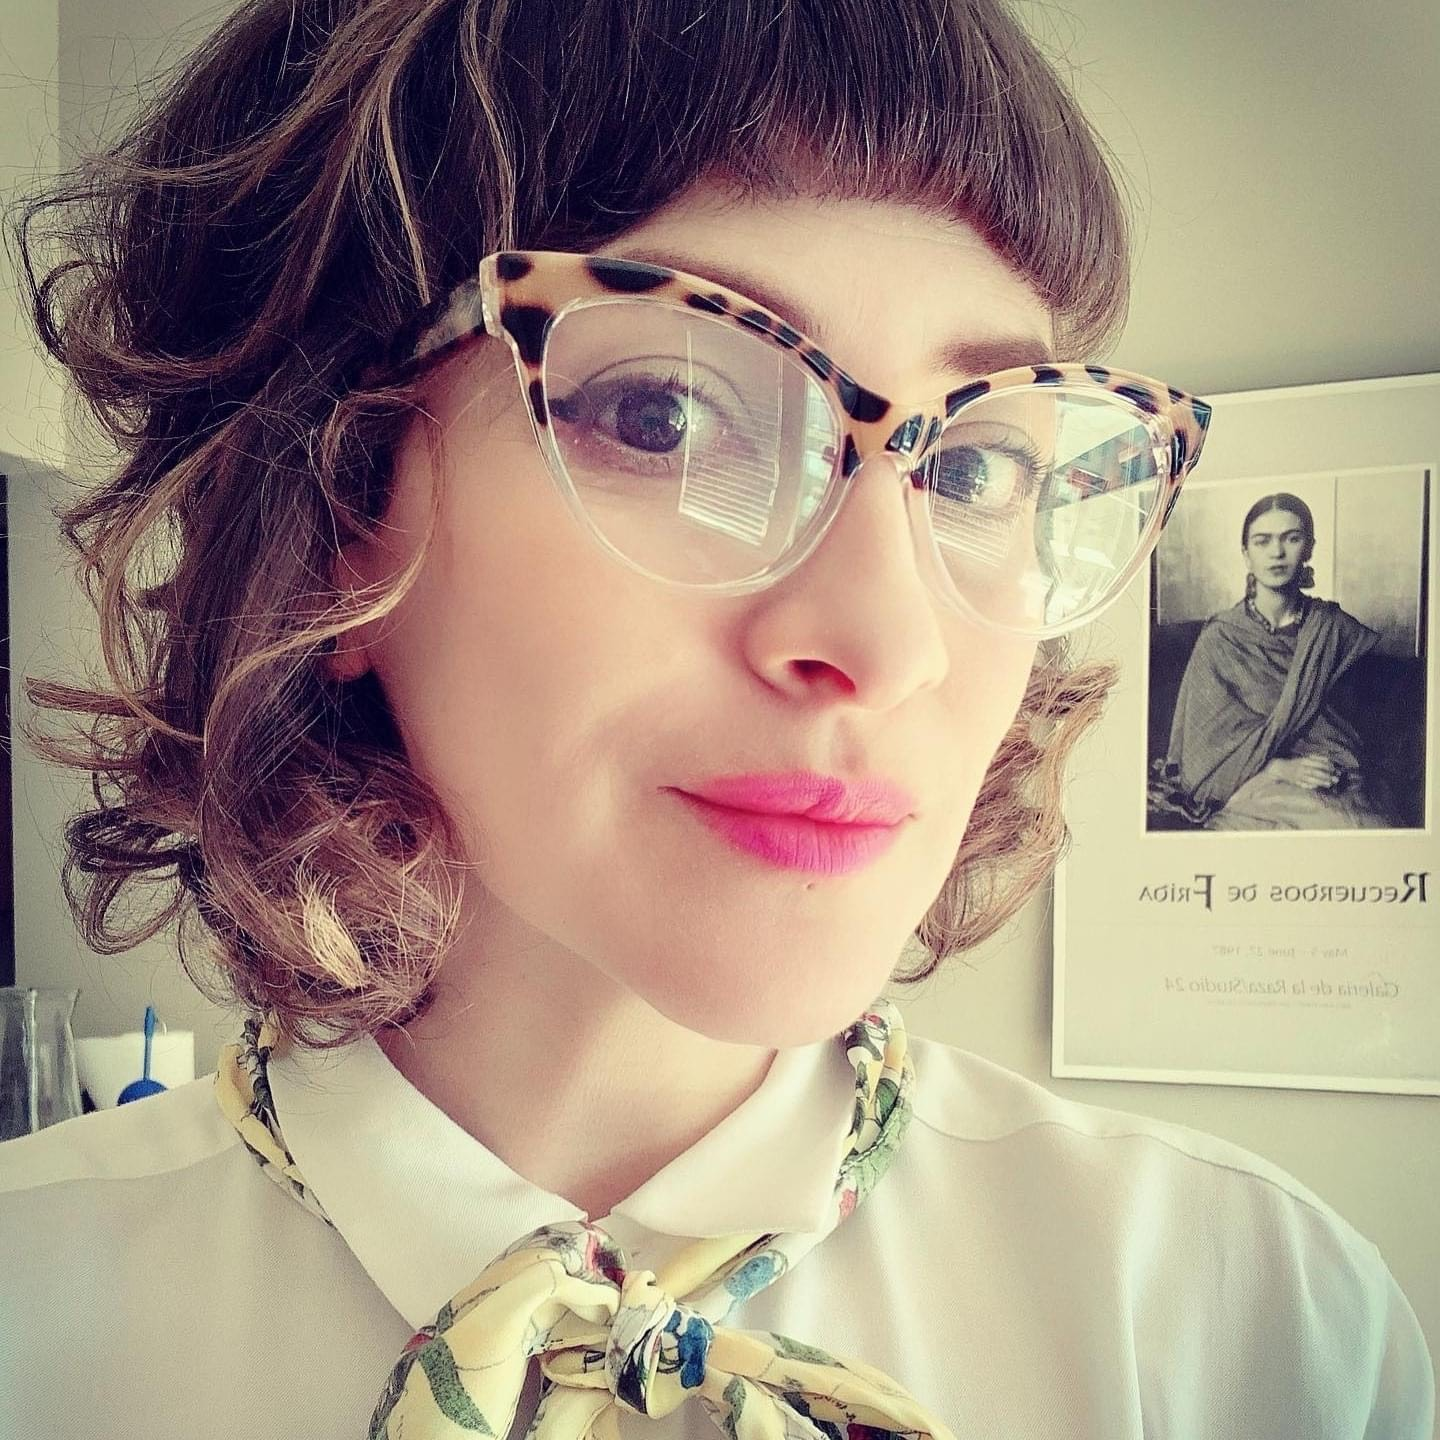 Selfie of a Mestiza woman with curly brown hair just below her chin and bangs and big brown eyes. She wears a collared blouse with a flowered scarf tied at the collar and large cat-eye glasses with cat print frames. She gazes pensively to the camera. Behind her a Frida Kahlo poster showing a portrait of the artist and text in Spanish: Recuerdos de Frida (Frida's Memories)